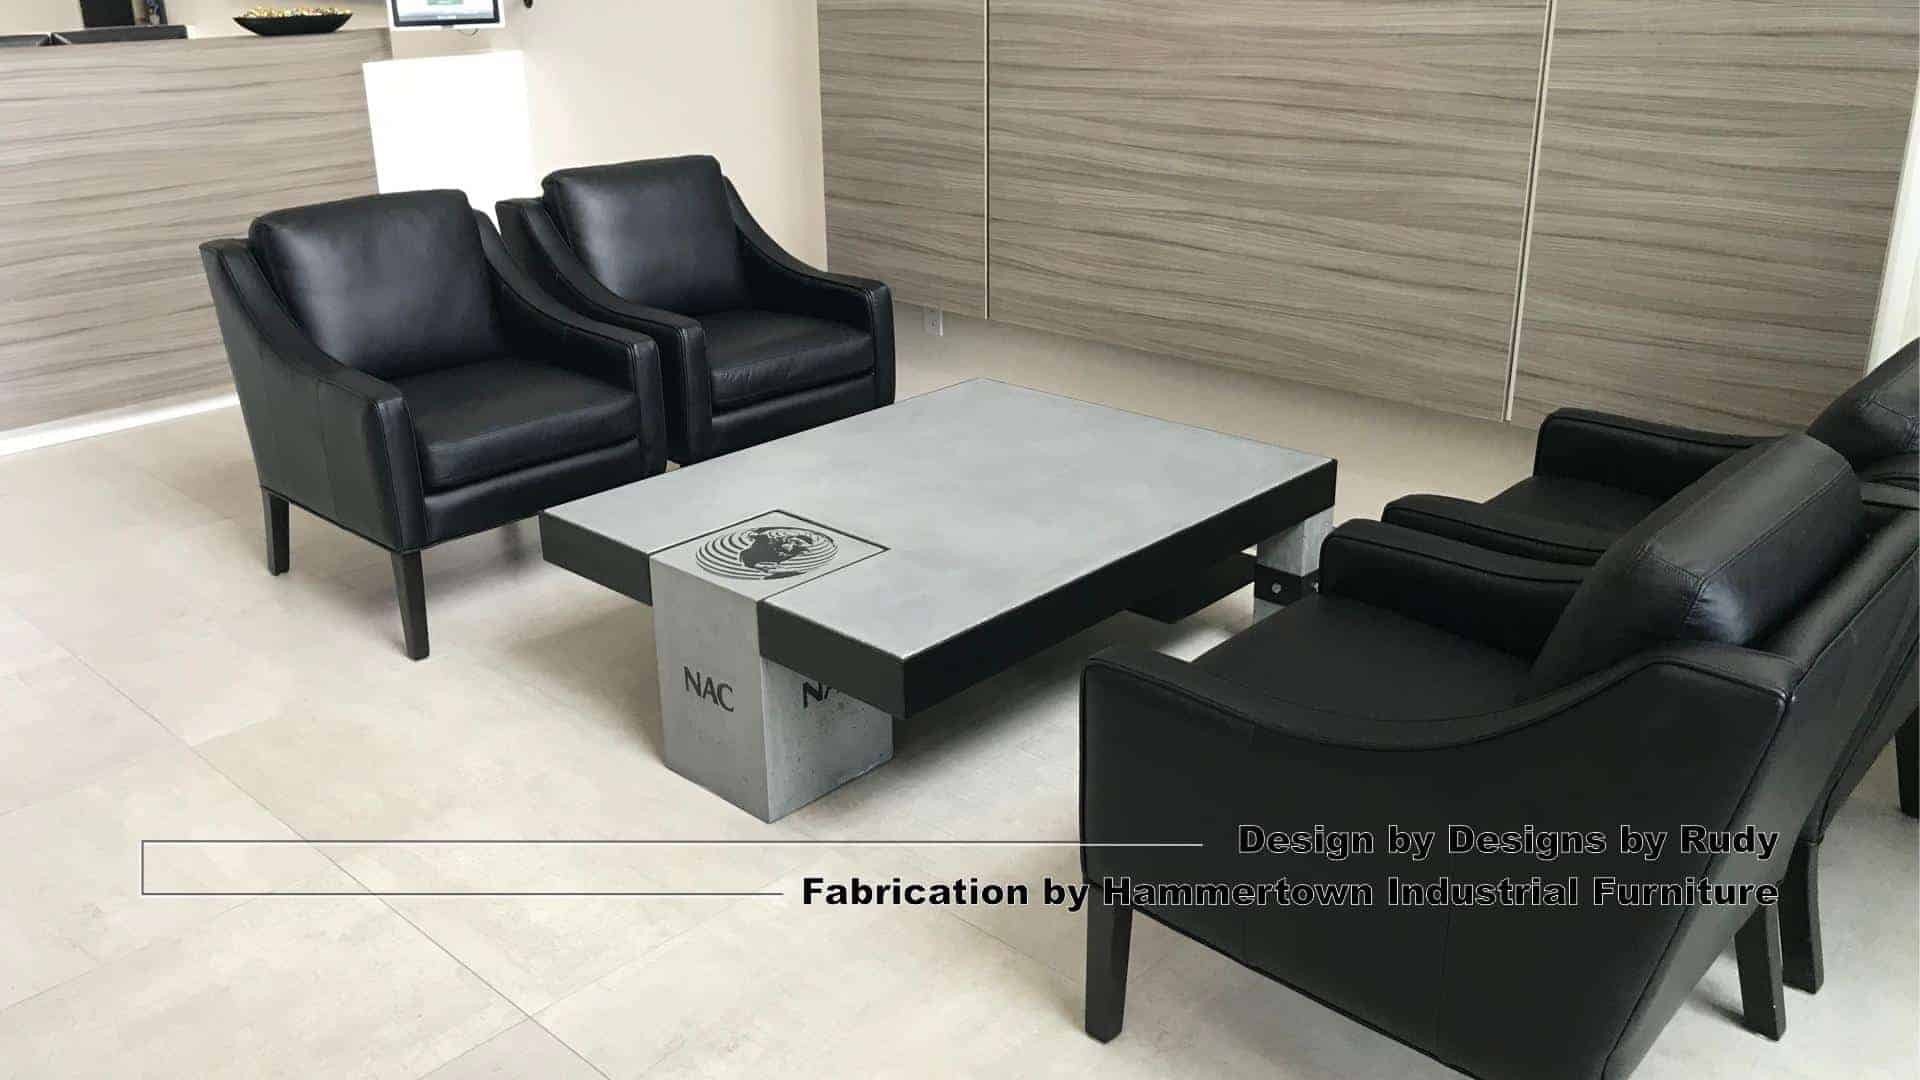 Concrete and steel coffee table for NAC, Designs by Rudy, Hammertown Industrial Furniture, view 6